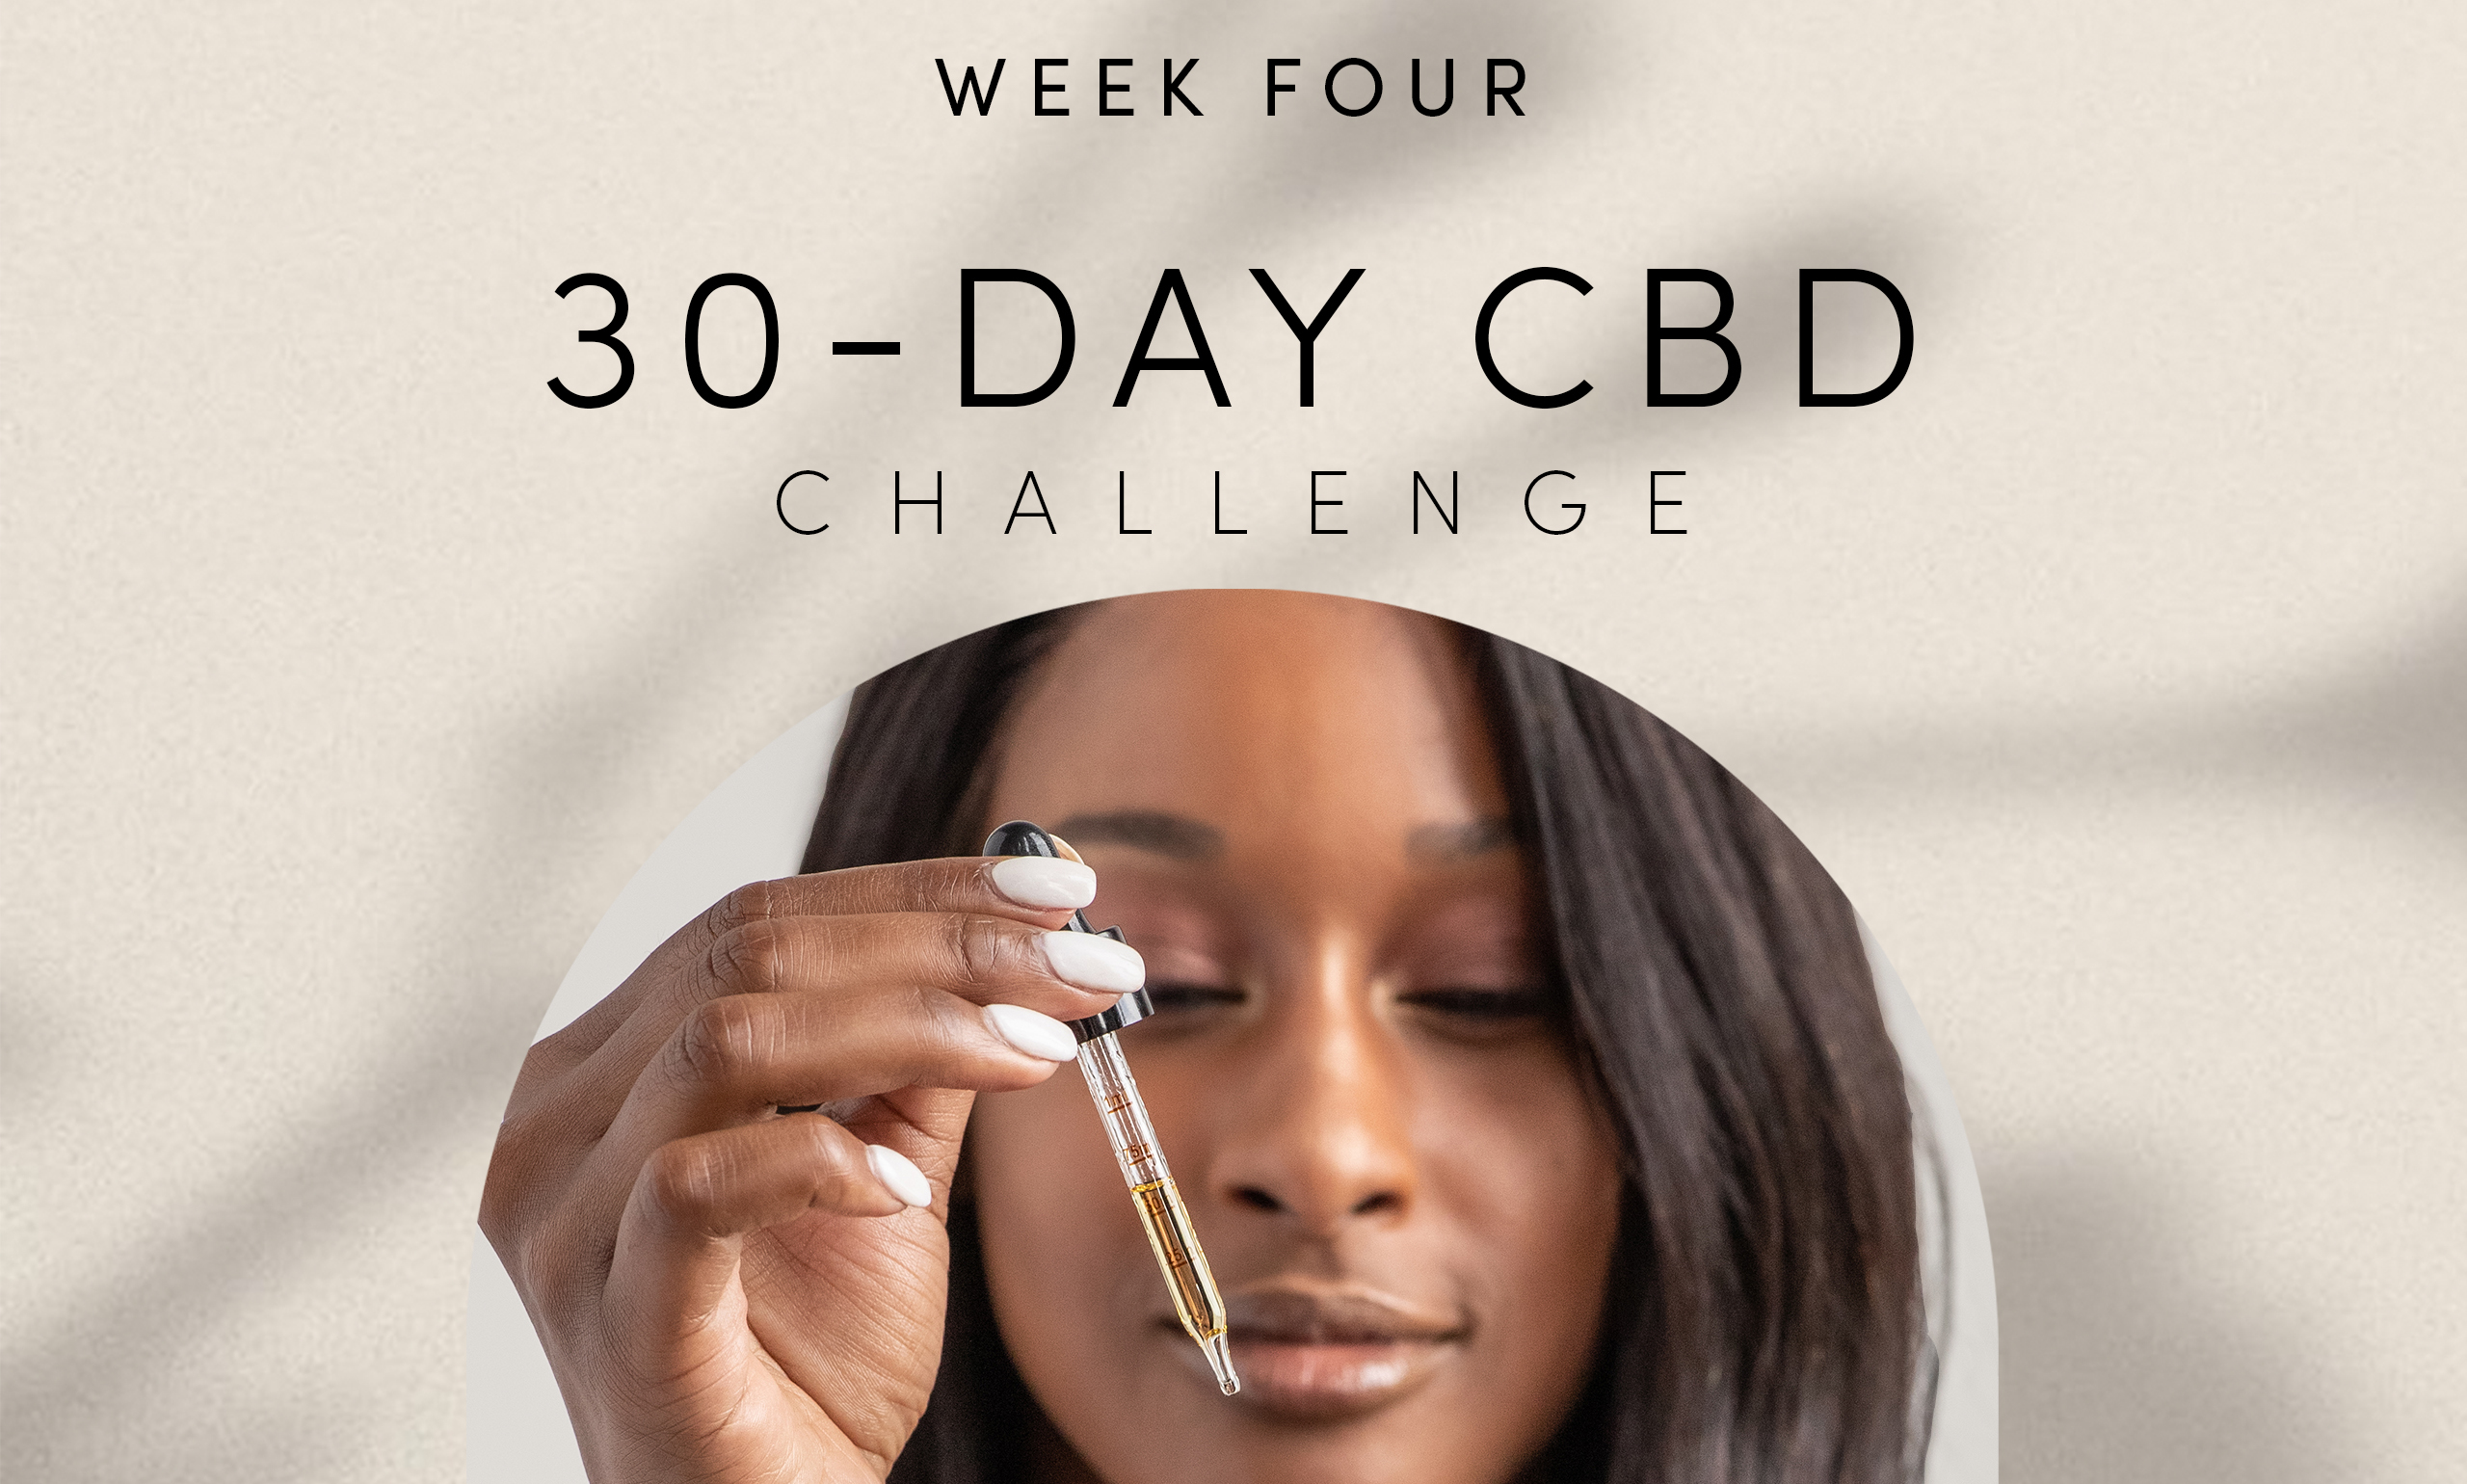 Week 4 Recap of Our 30-Day CBD Challenge